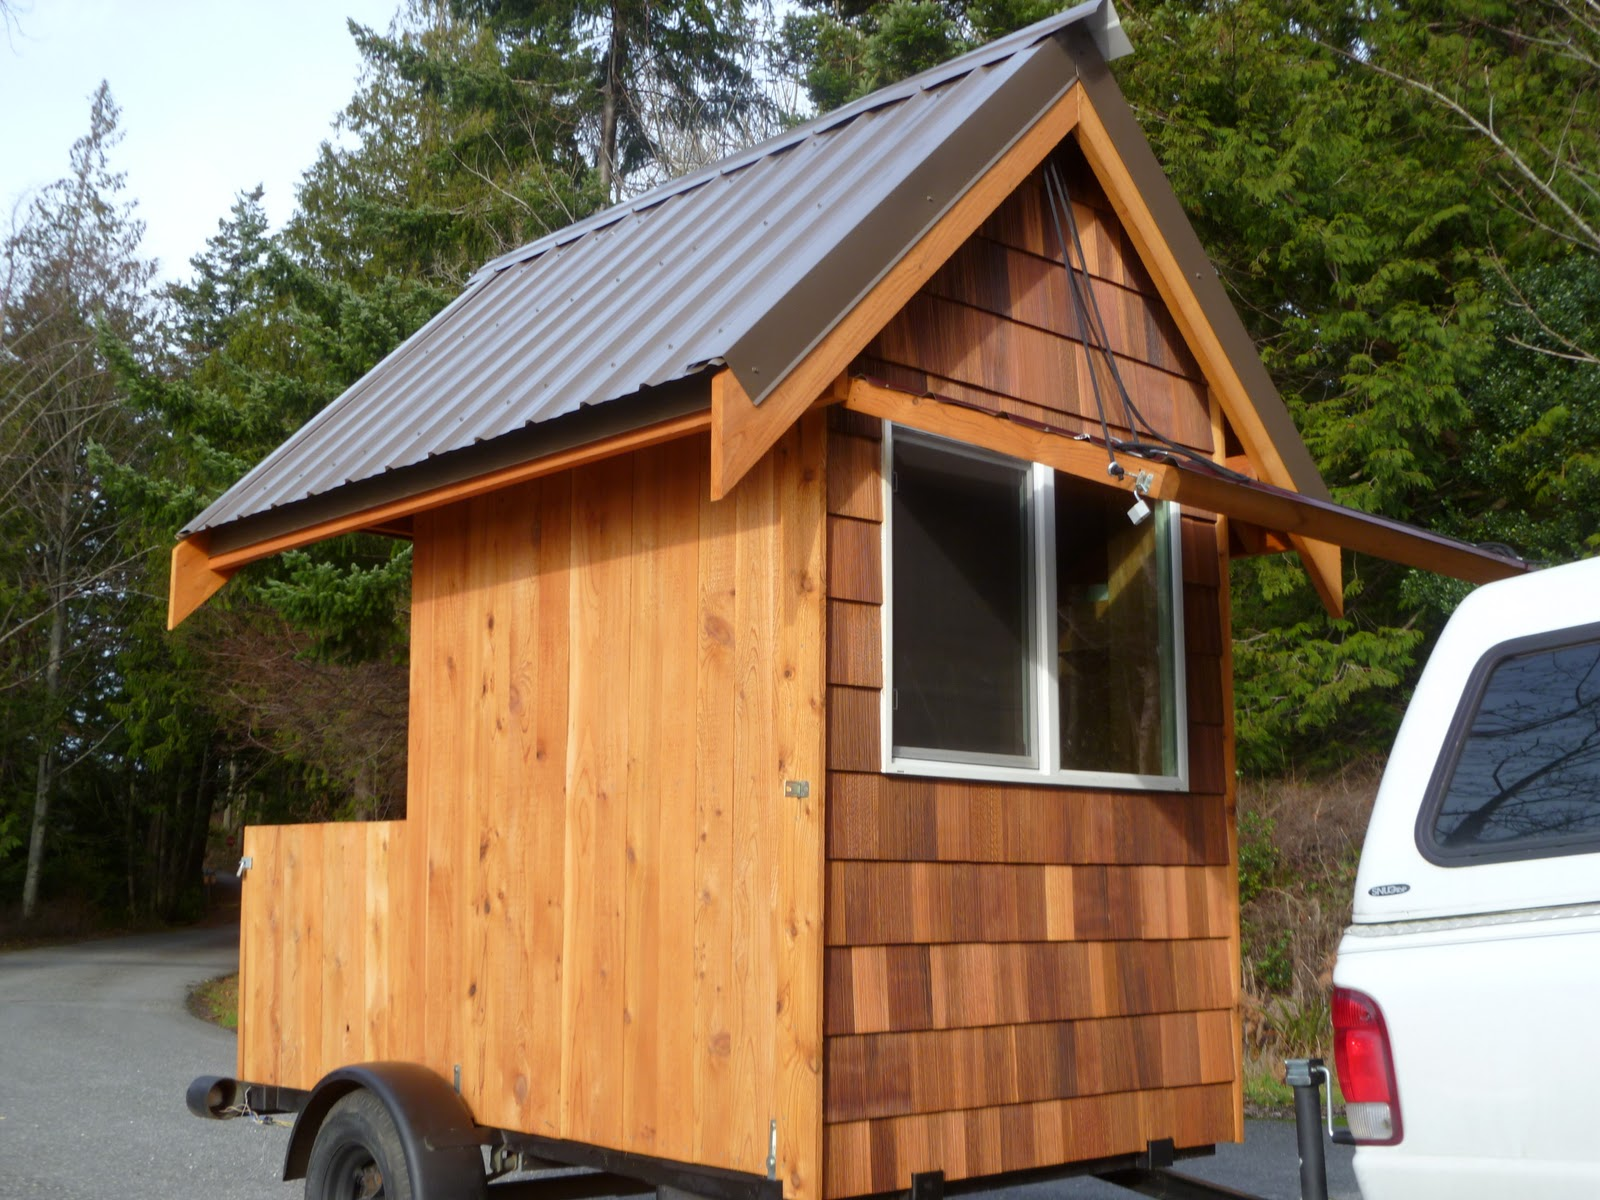 Fabulous Relaxshacks Com Eli Curtis Tiny Cabin On Wheels A Micro Getaway Largest Home Design Picture Inspirations Pitcheantrous